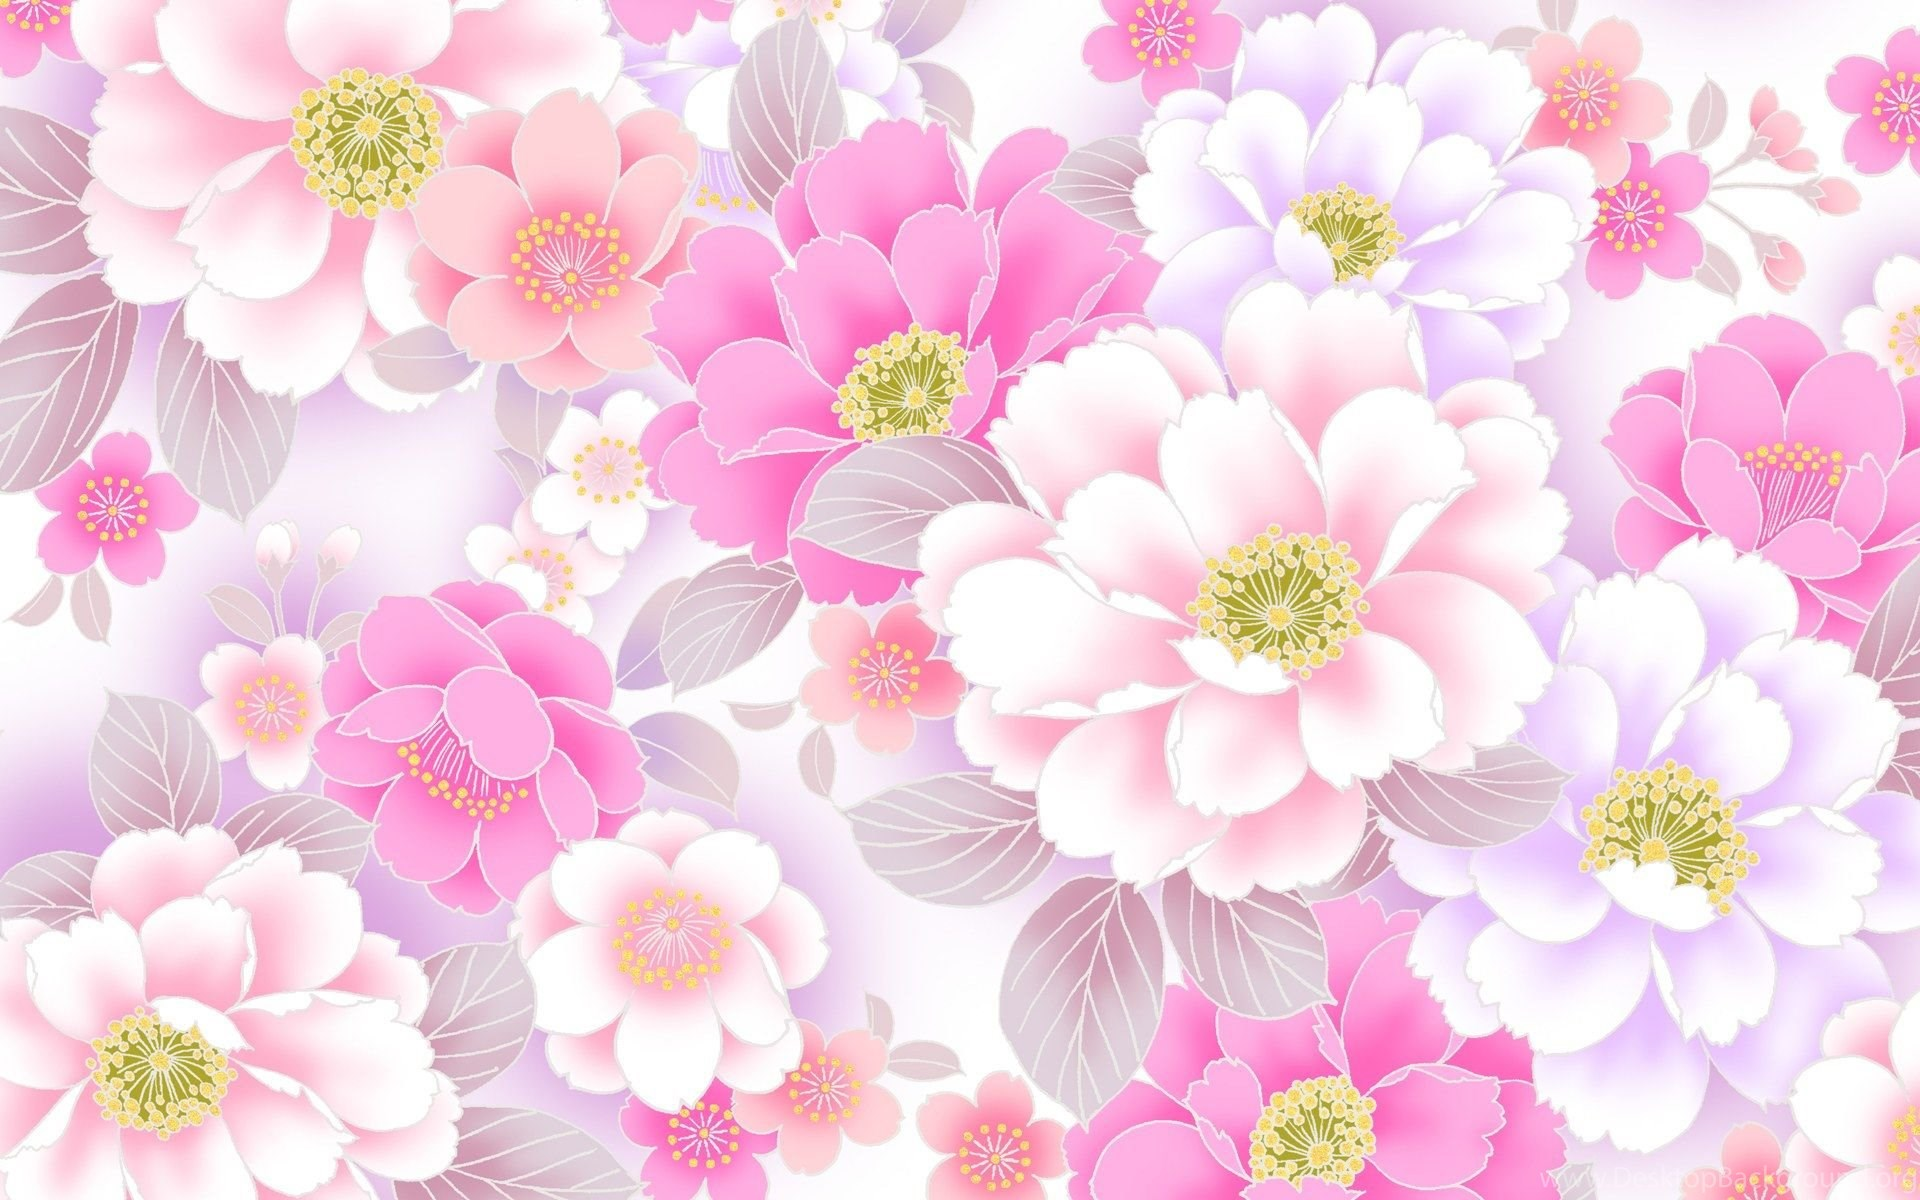 Pink Floral Backgrounds Wallpapers 253885 Desktop Background